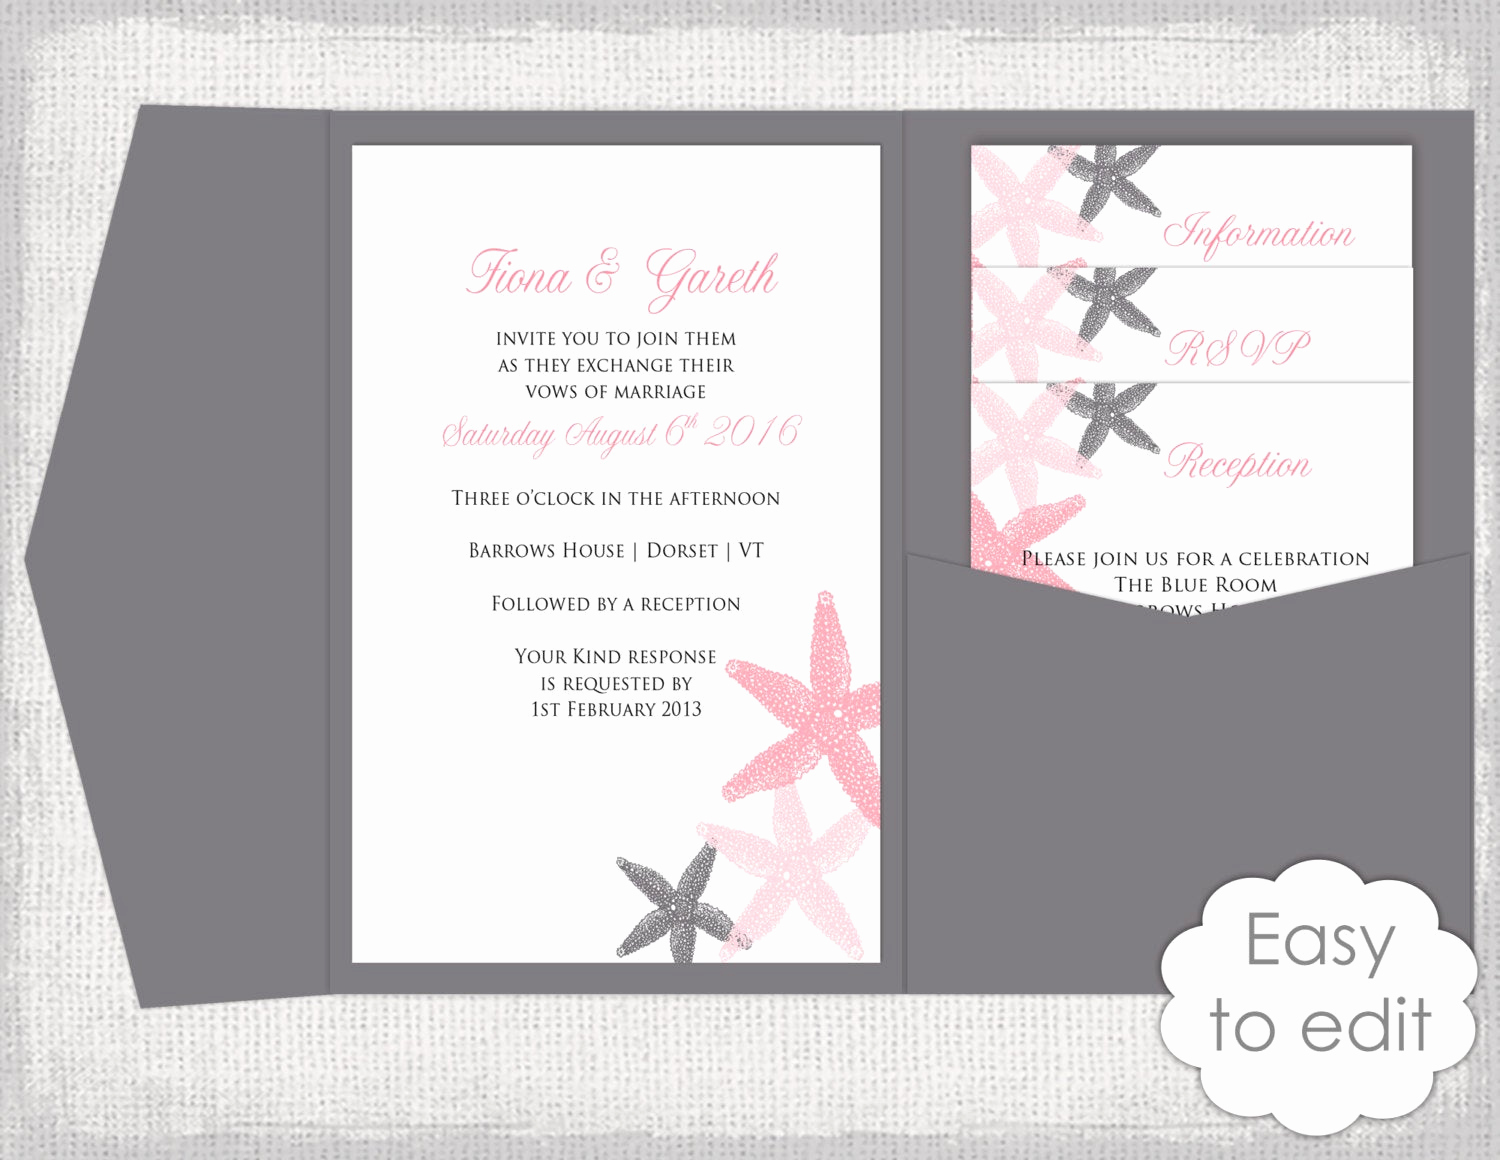 Diy Wedding Invitation Templates Inspirational Pocket Wedding Invitation Template Diy Beach Salmon and